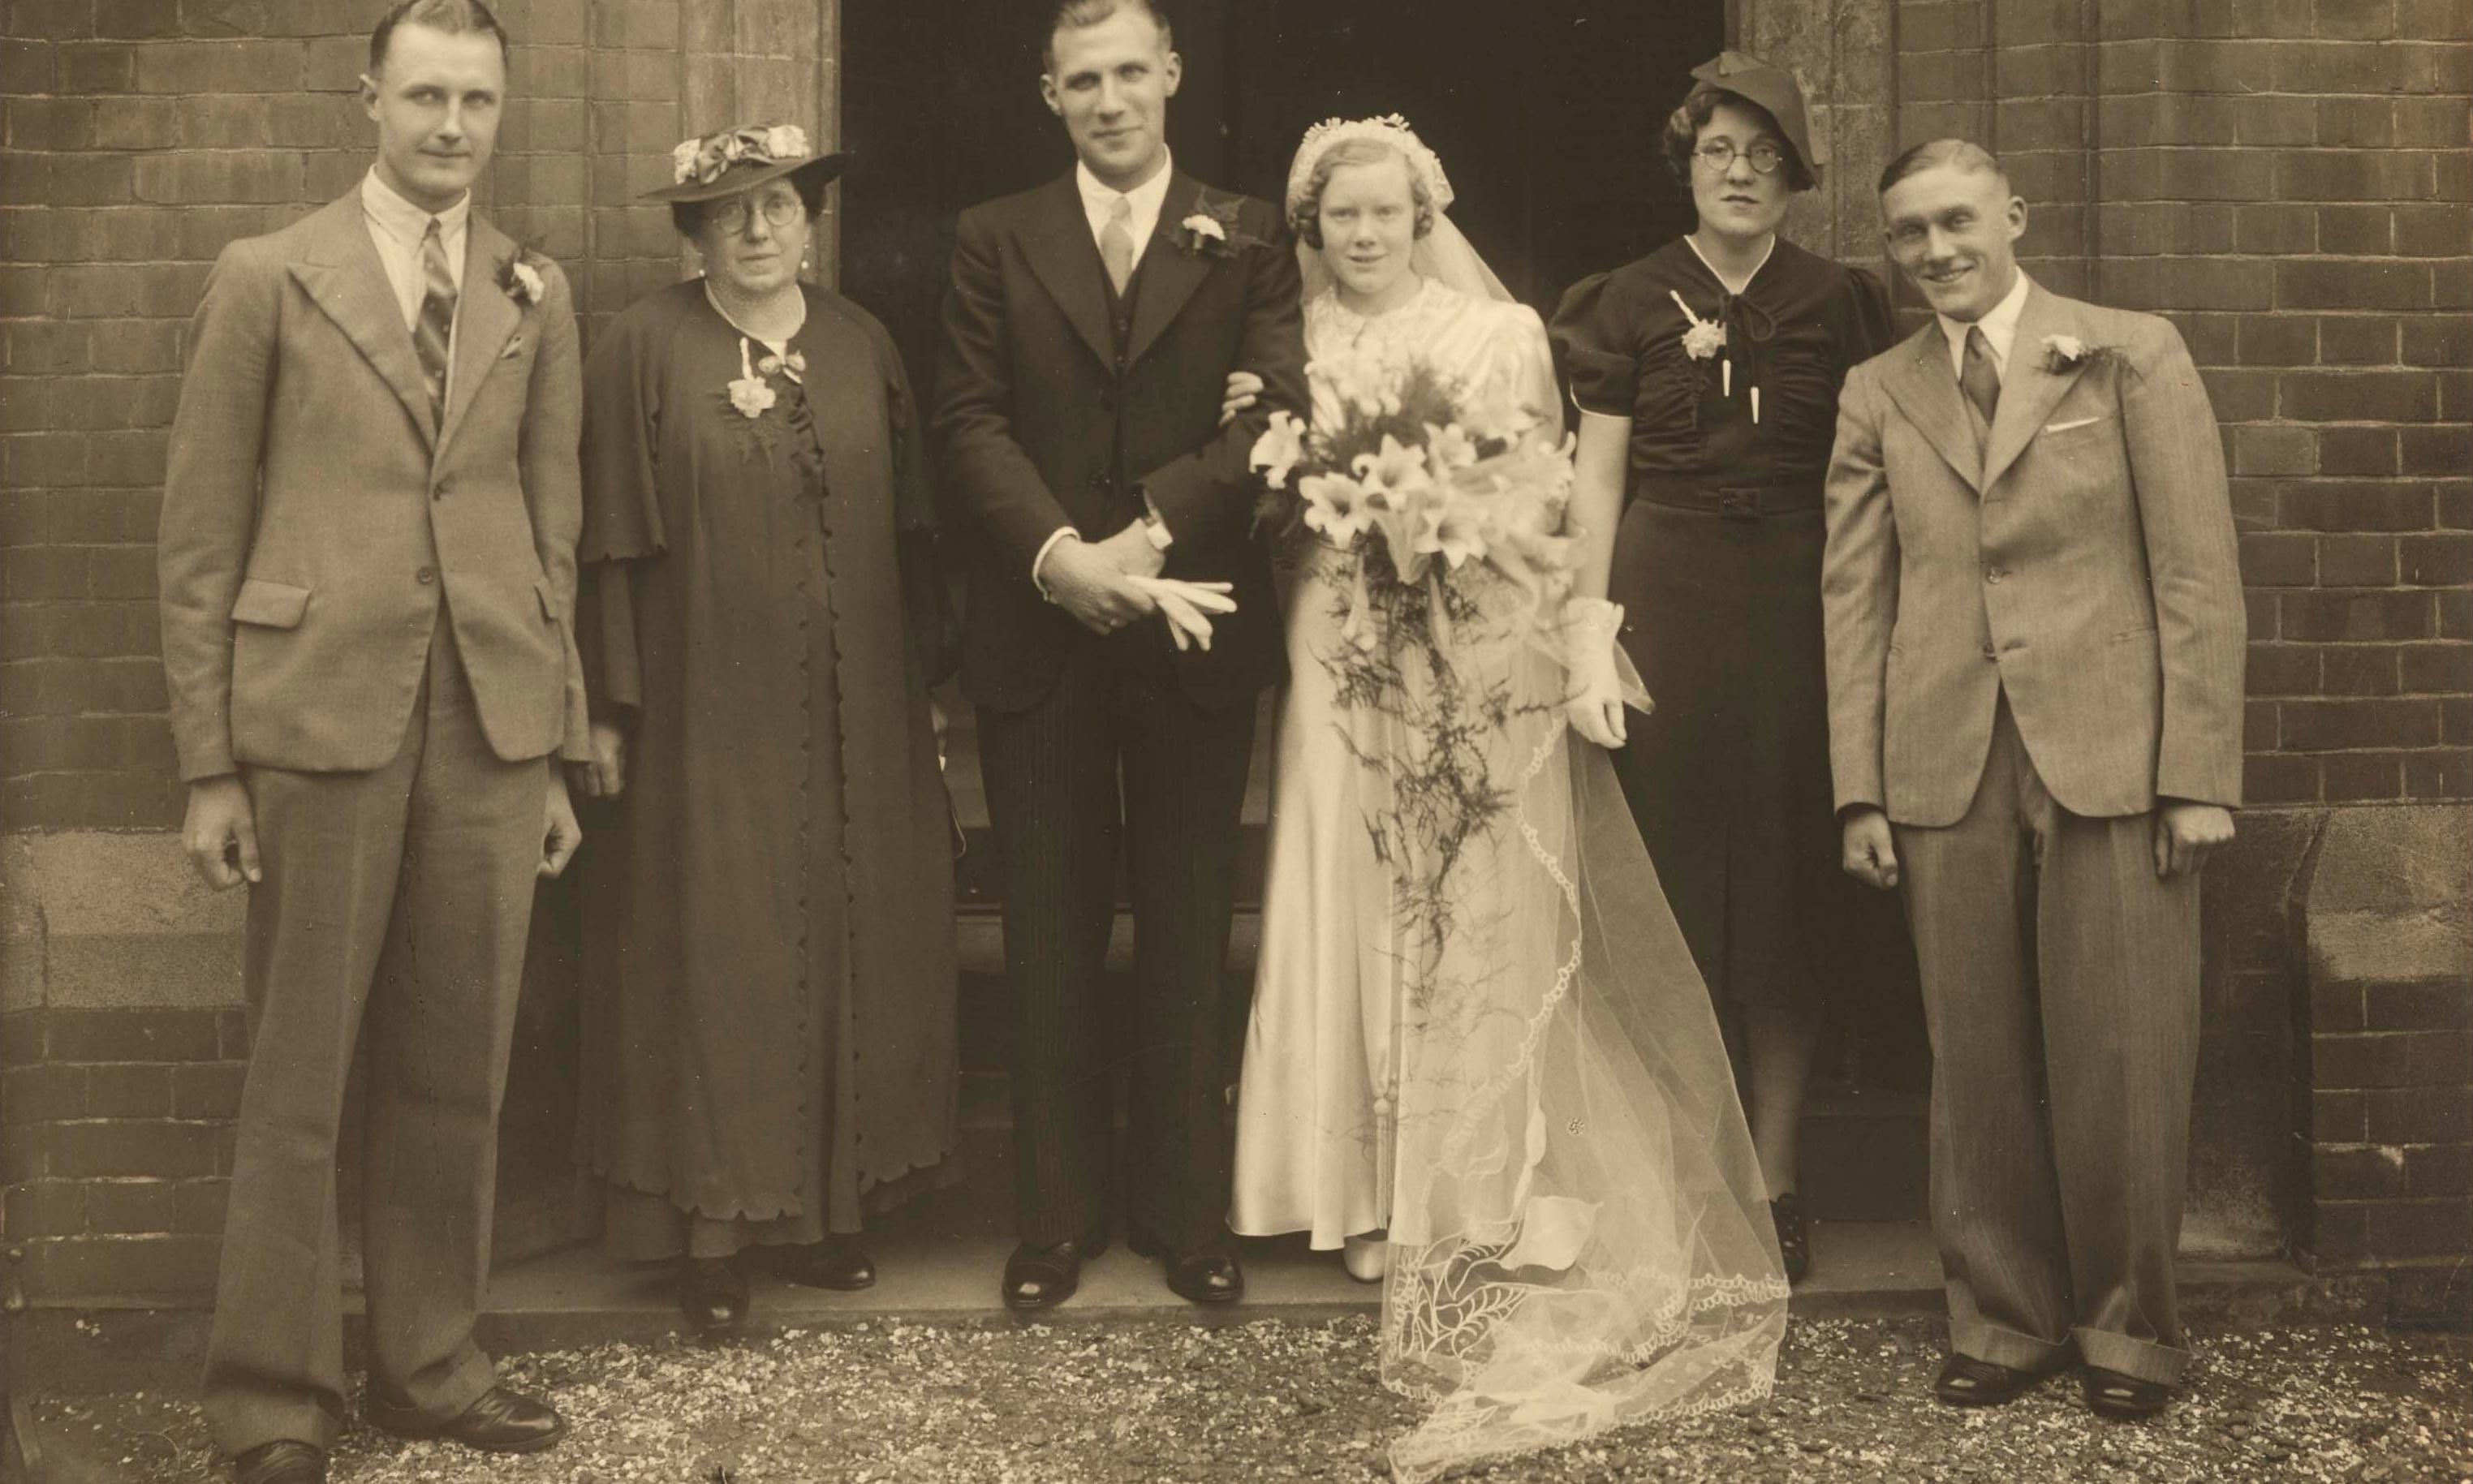 One dress, five weddings: gown with a history goes on display